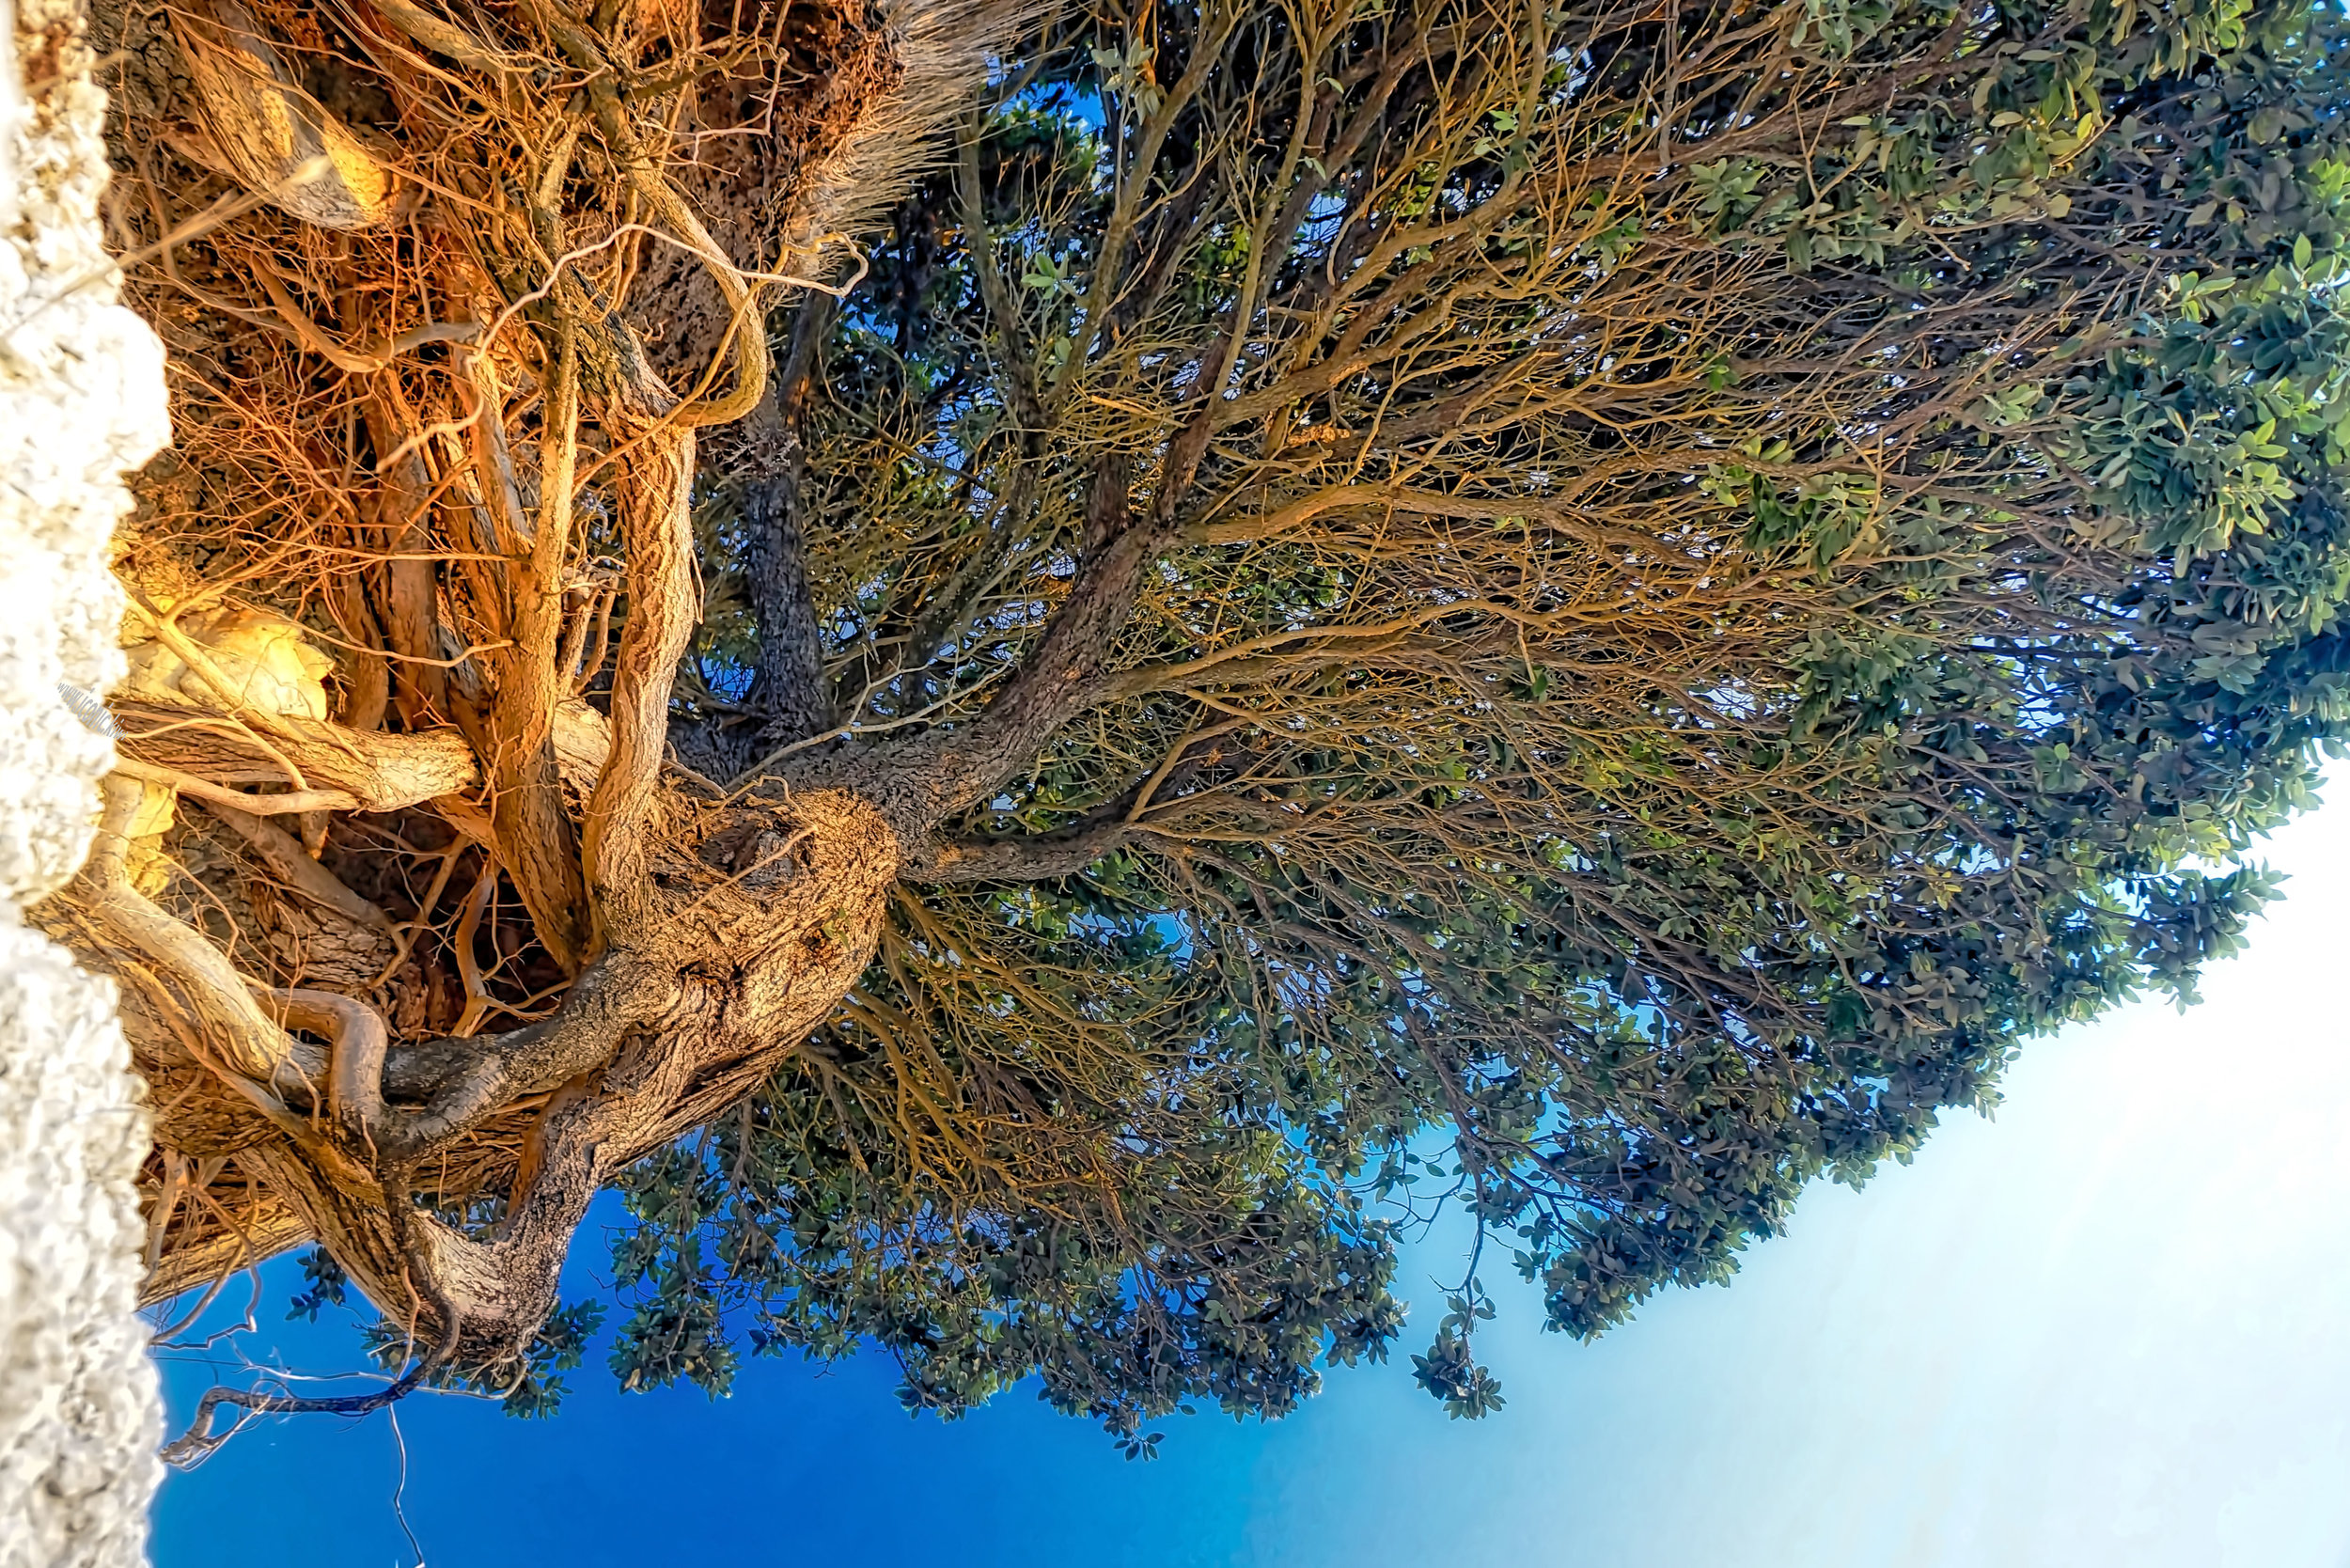 Pohutukawa tree clinging onto a cliff above Omāpere beach in Northland, New Zealand